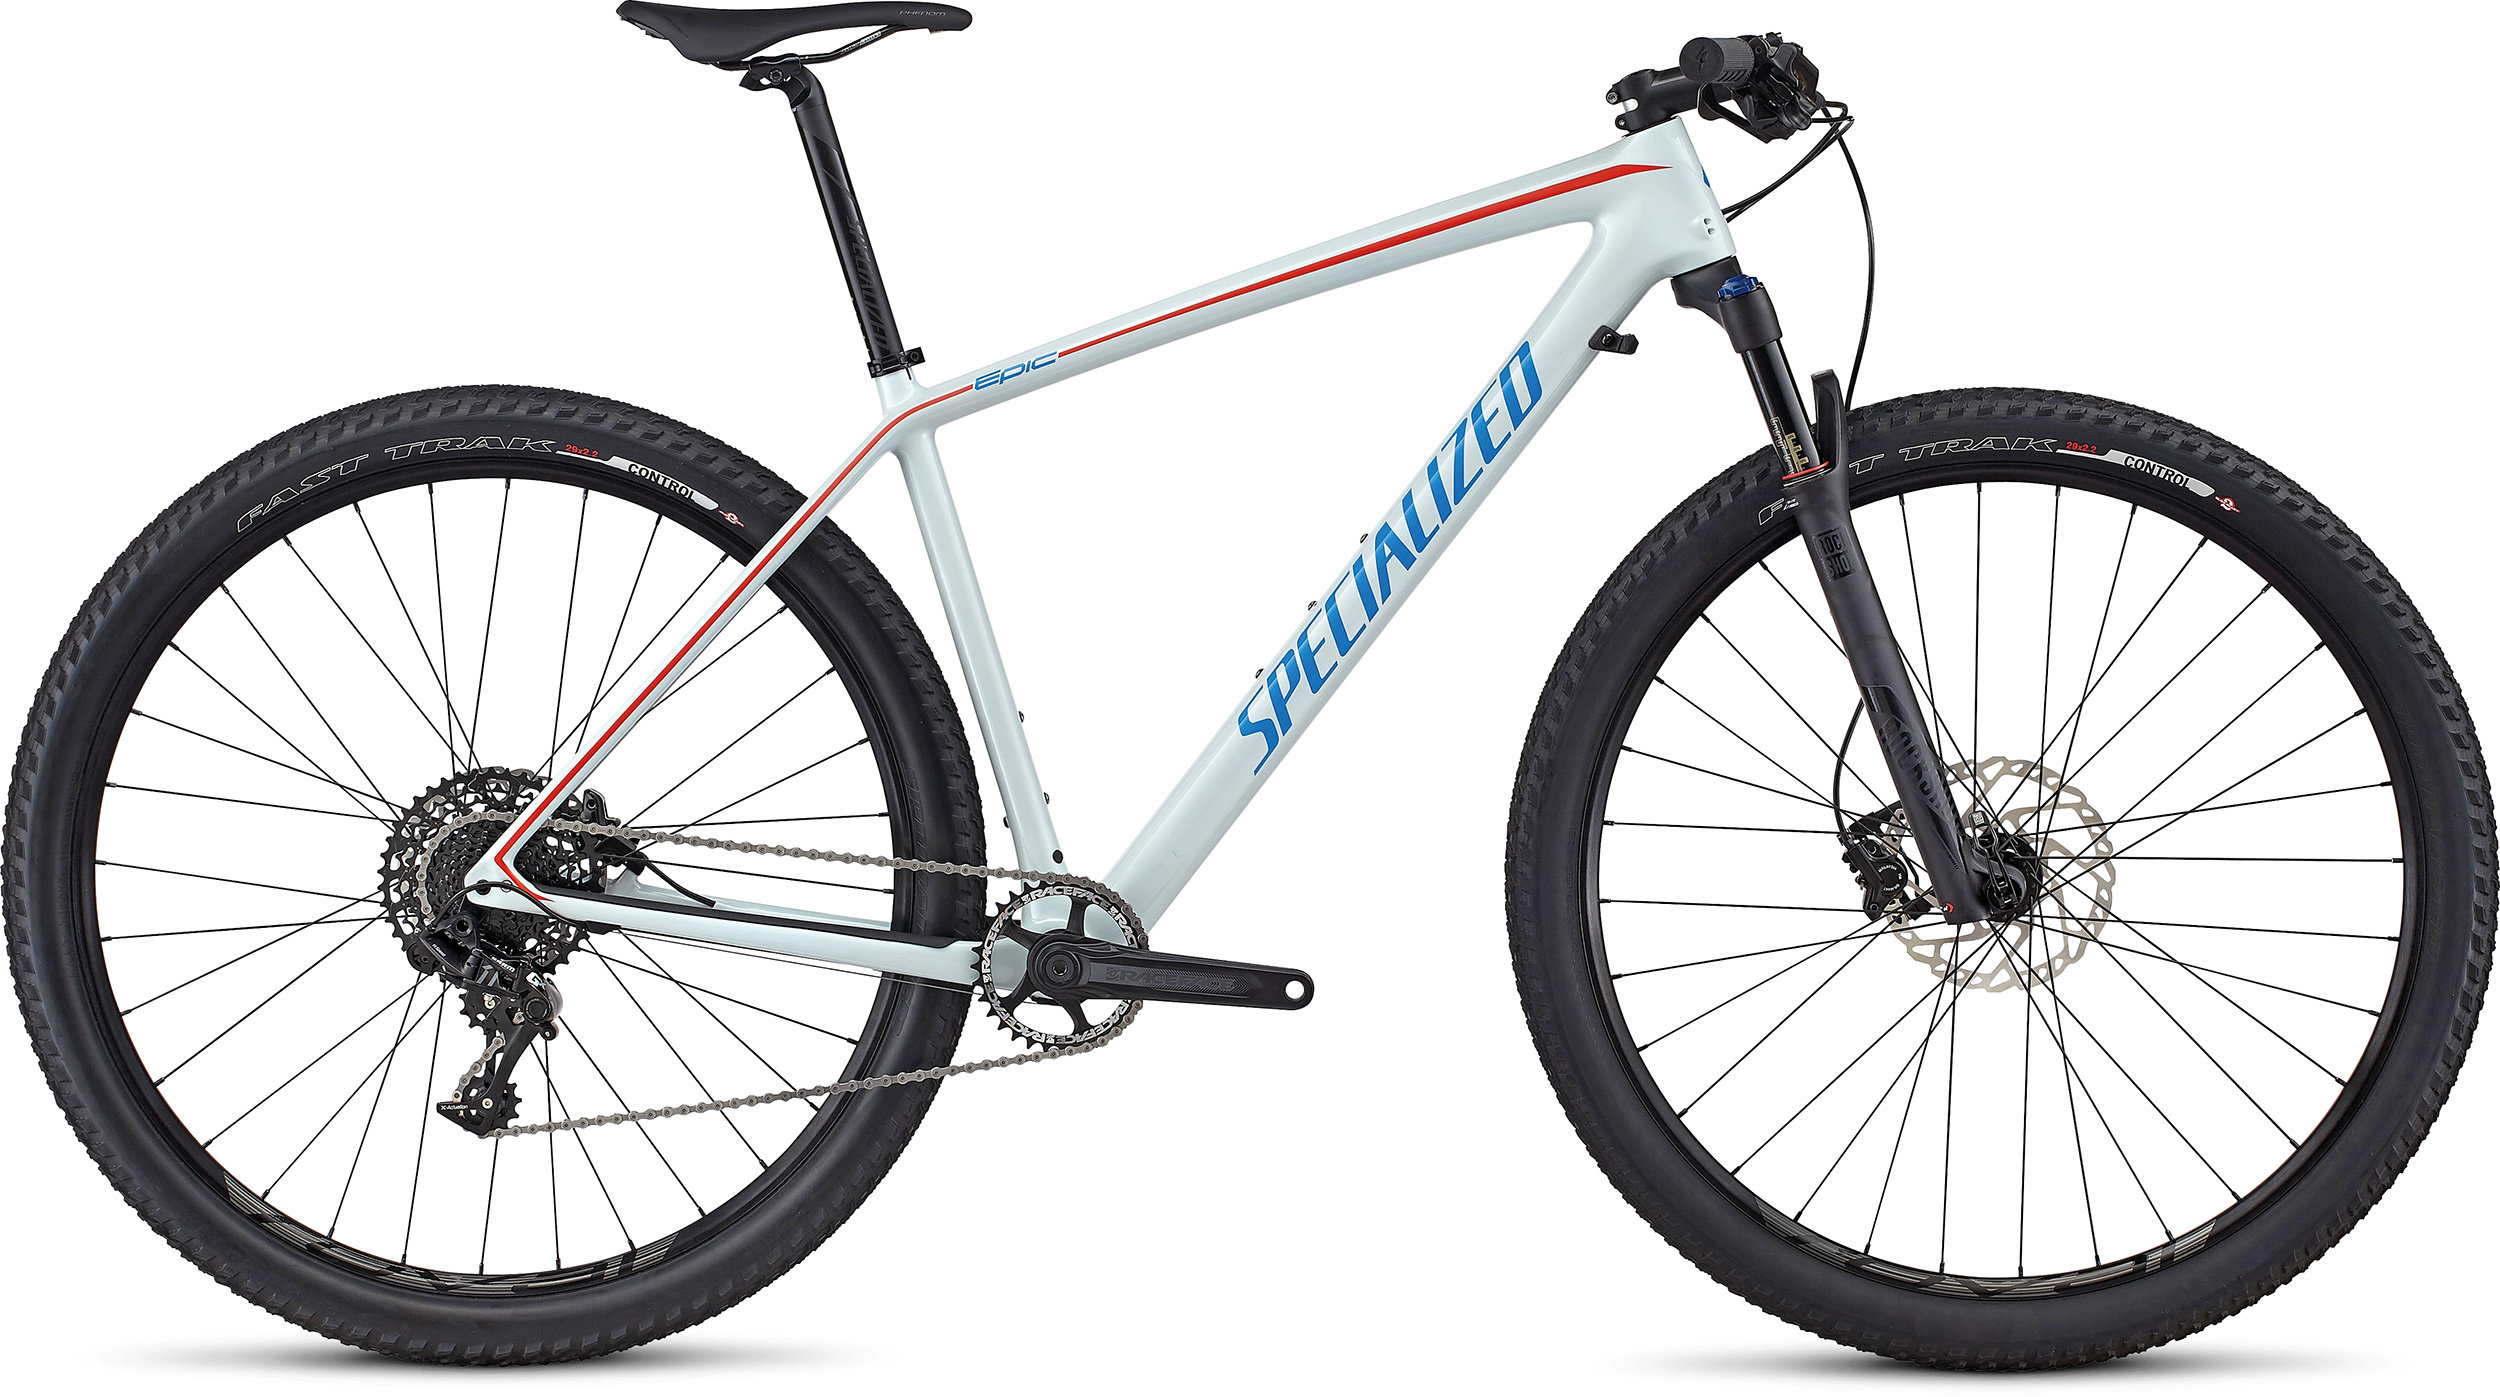 SPECIALIZED EPIC HT COMP CARBON WC 29 BBYBLU/NENBLU/NRDCRED S - Bikedreams & Dustbikes